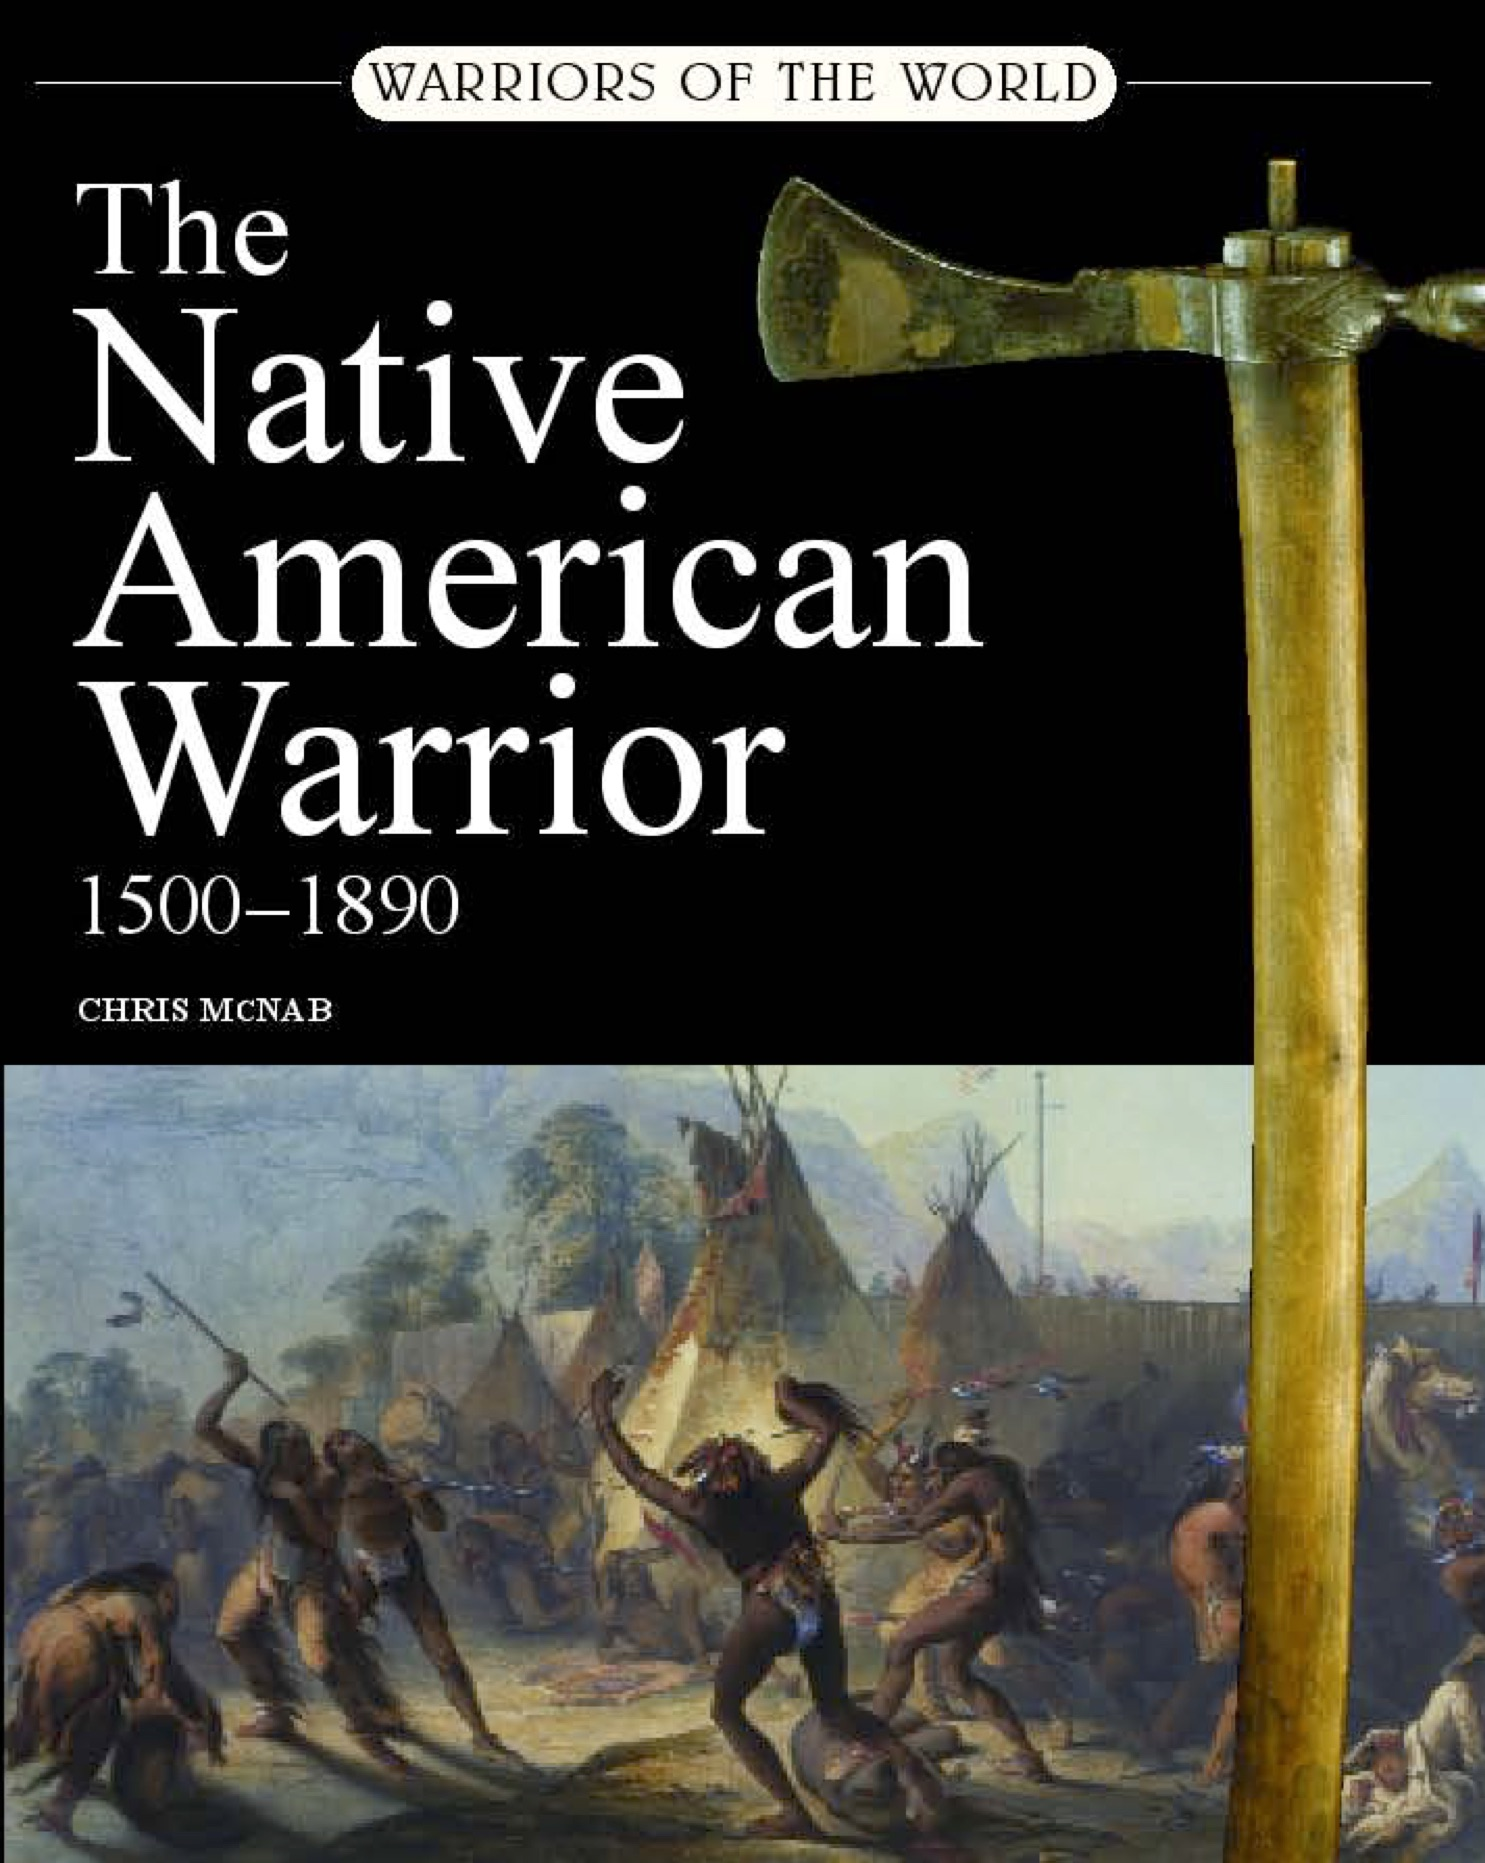 The Native American Warrior